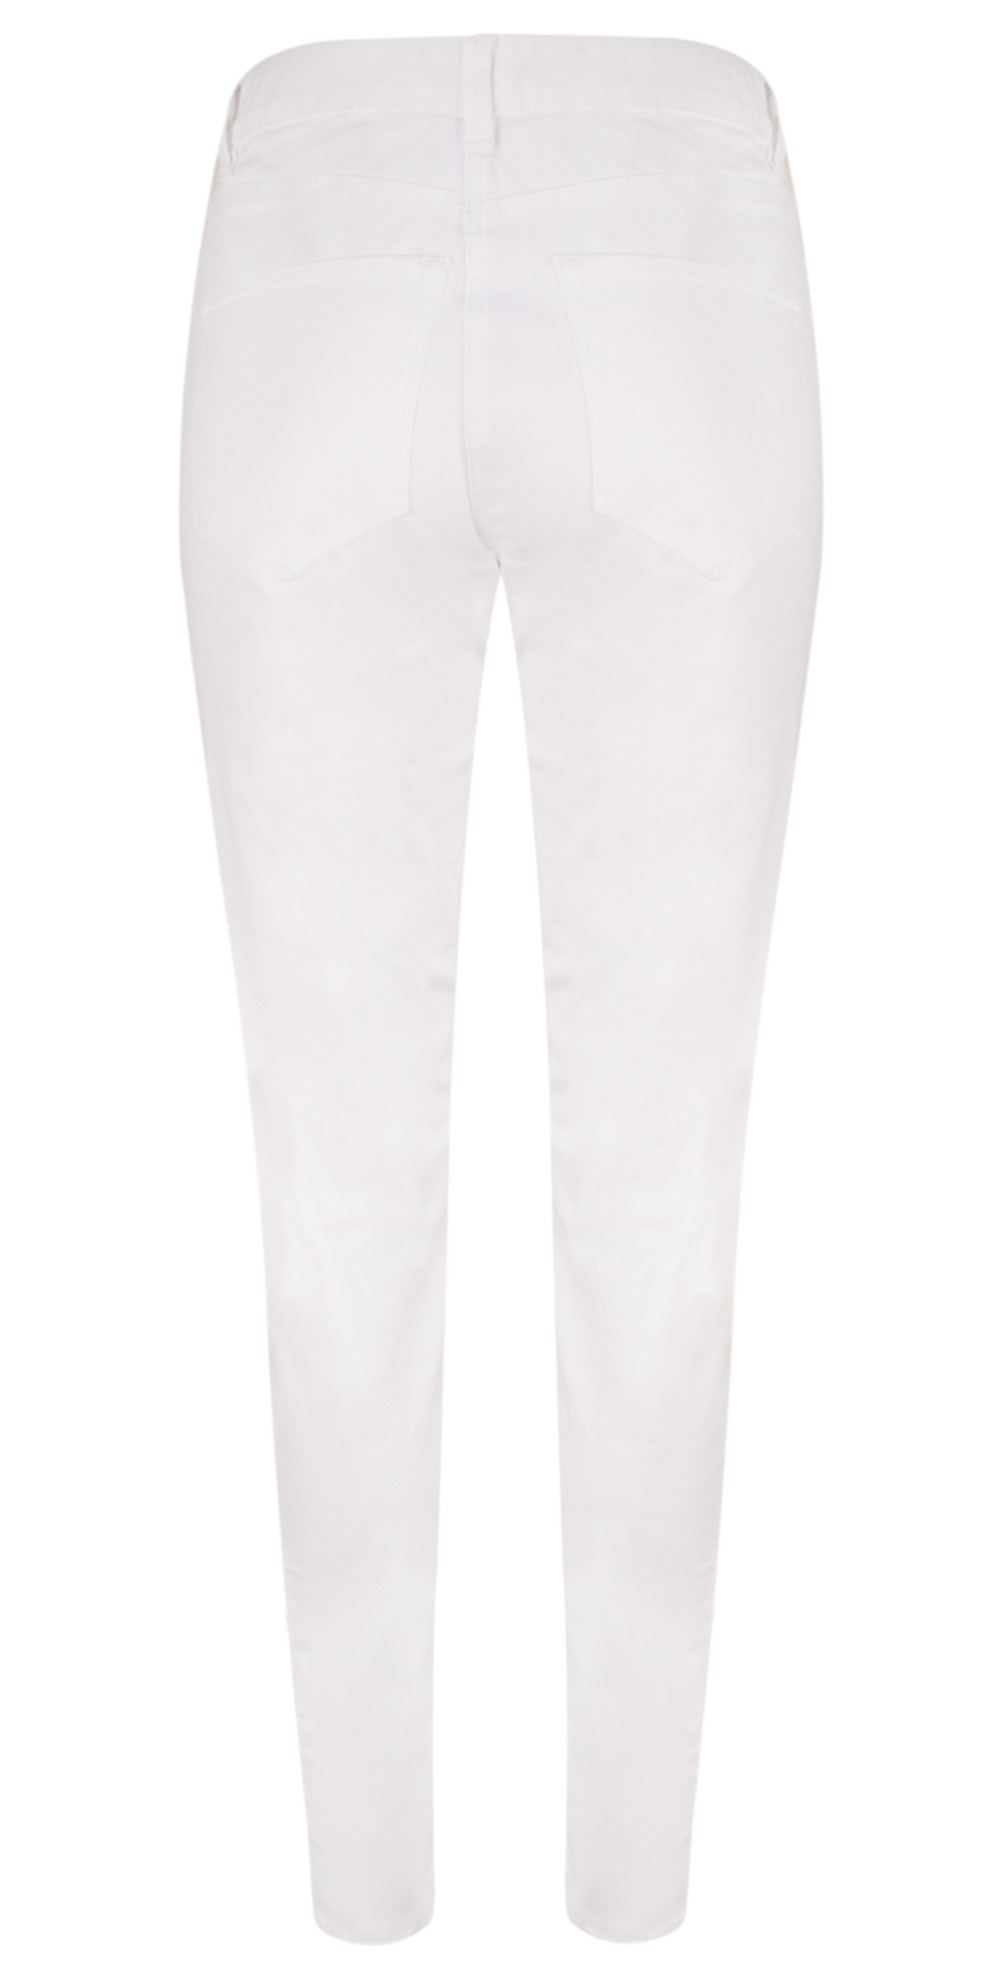 Essentials Highwaist Skinny Pants main image